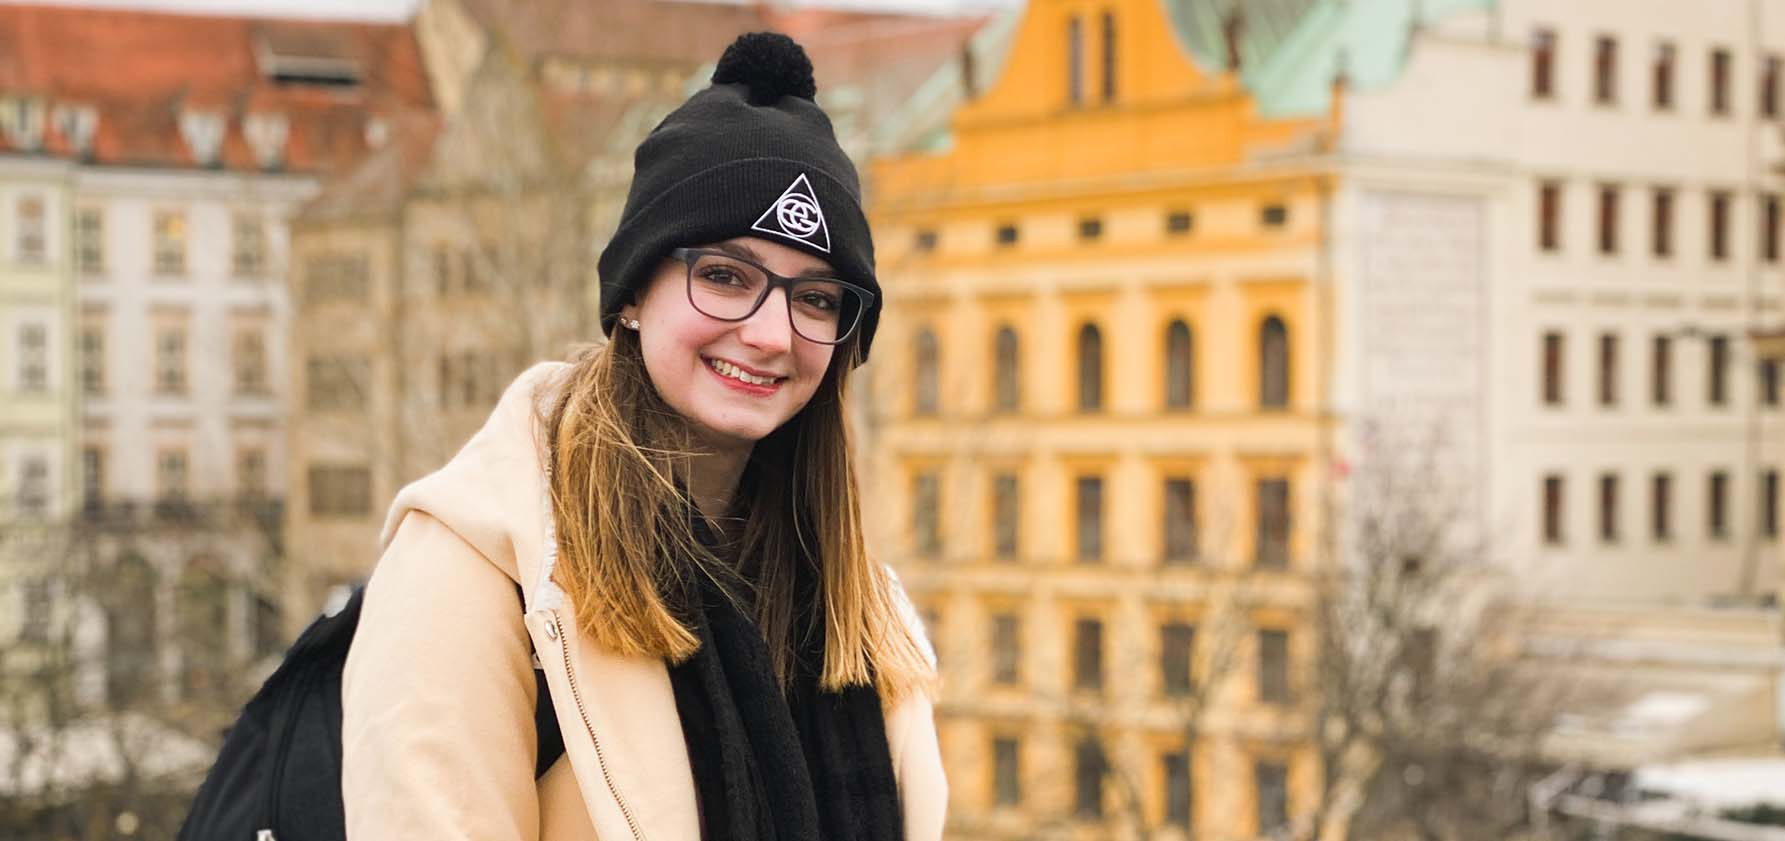 Kylie Norwood enjoys the view of historic buildings in the Czech Republic.